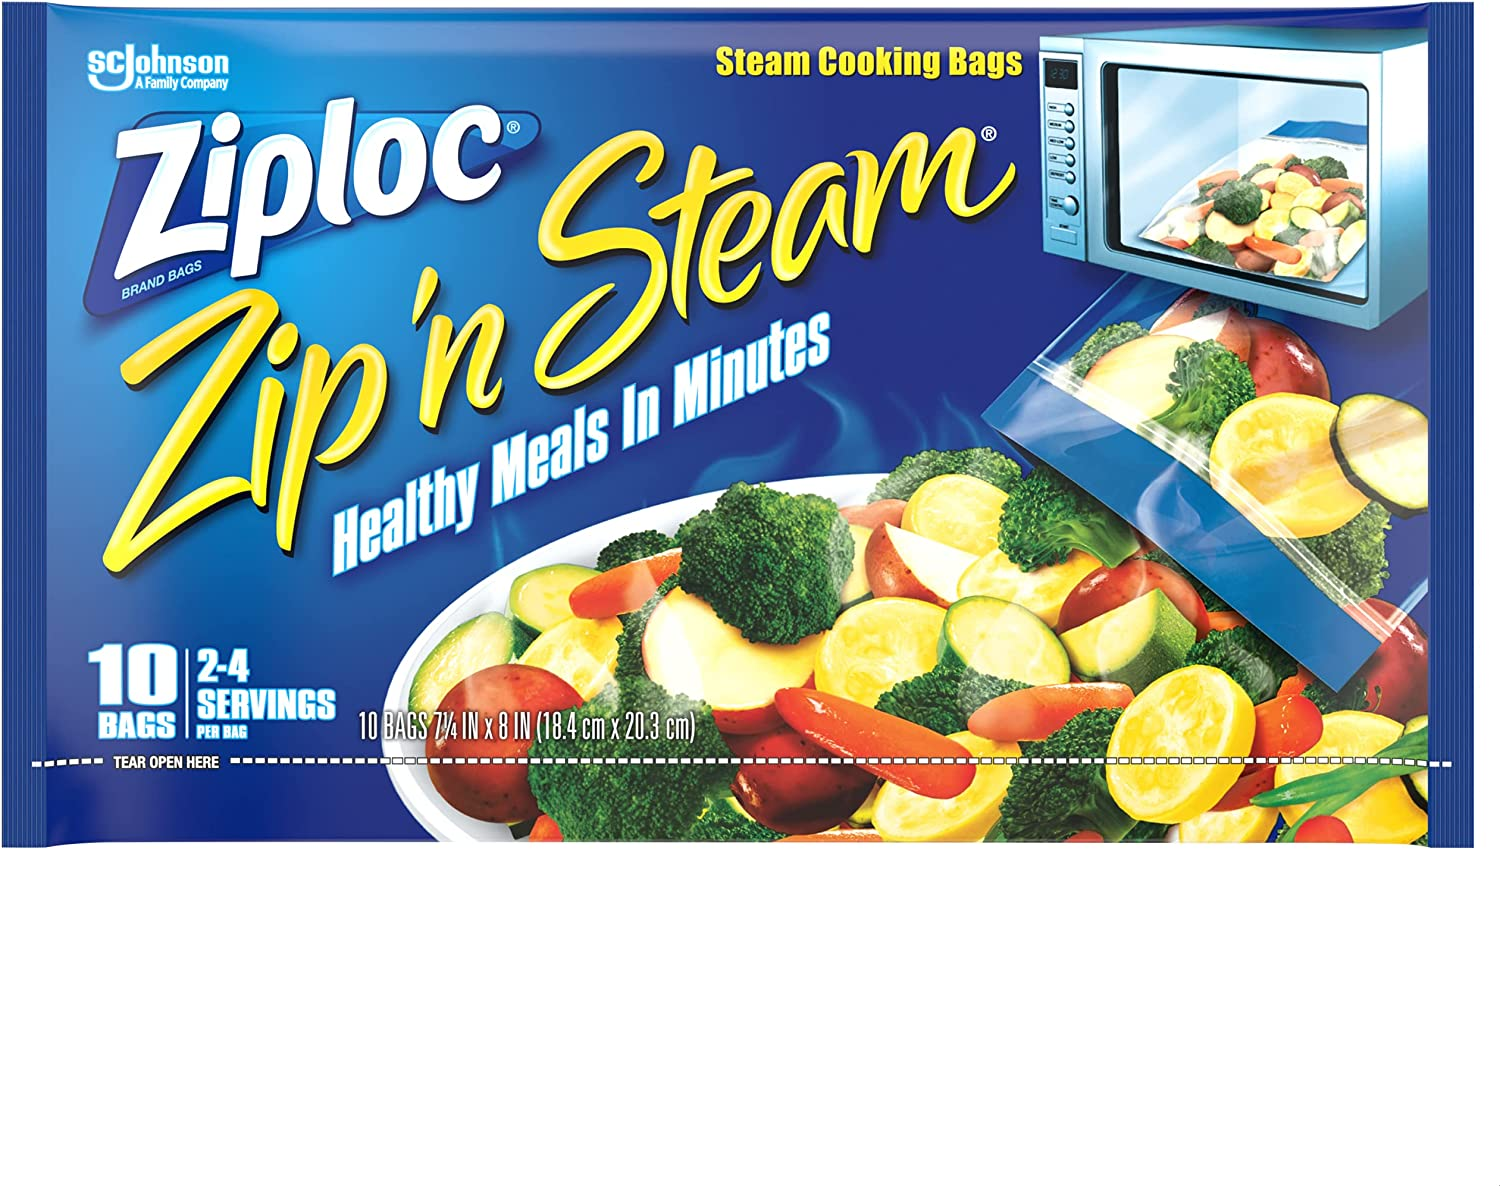 Ziploc Zip 'n Steam Meal Prep Cooking Steaming Max shipfree 62% OFF Bags Foo and For